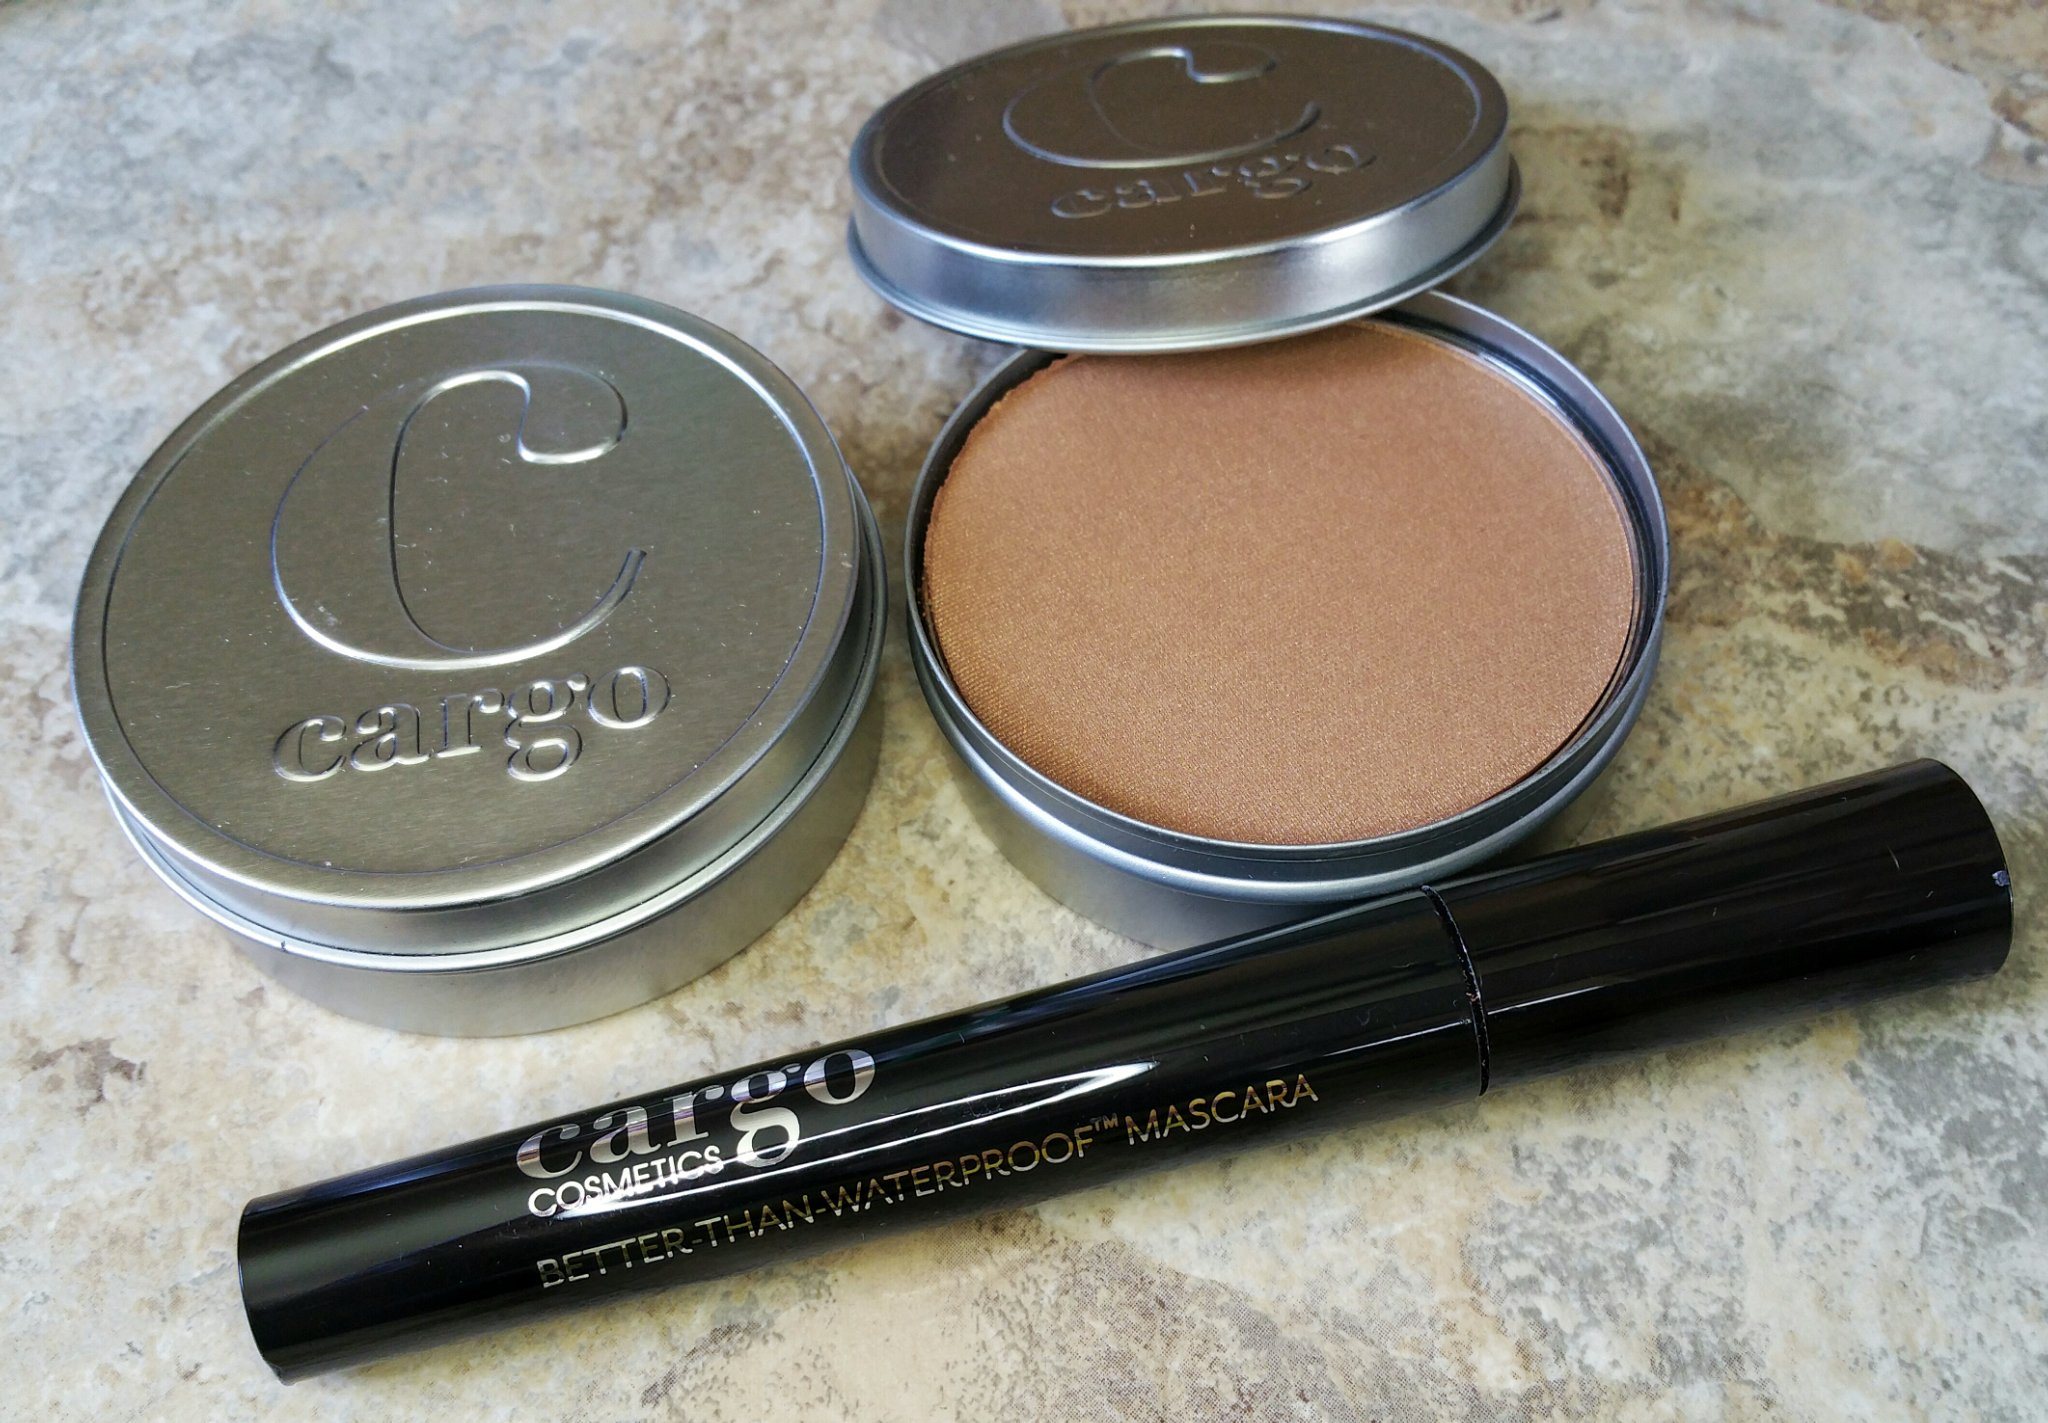 Cargo cosmetics, cargo, swimmables, blush, face products, cosmetics, makeup, beauty, swatches, cargo blush and bronzer, blush, bronzer, contour, highlight, review, beauty review, makeup review,